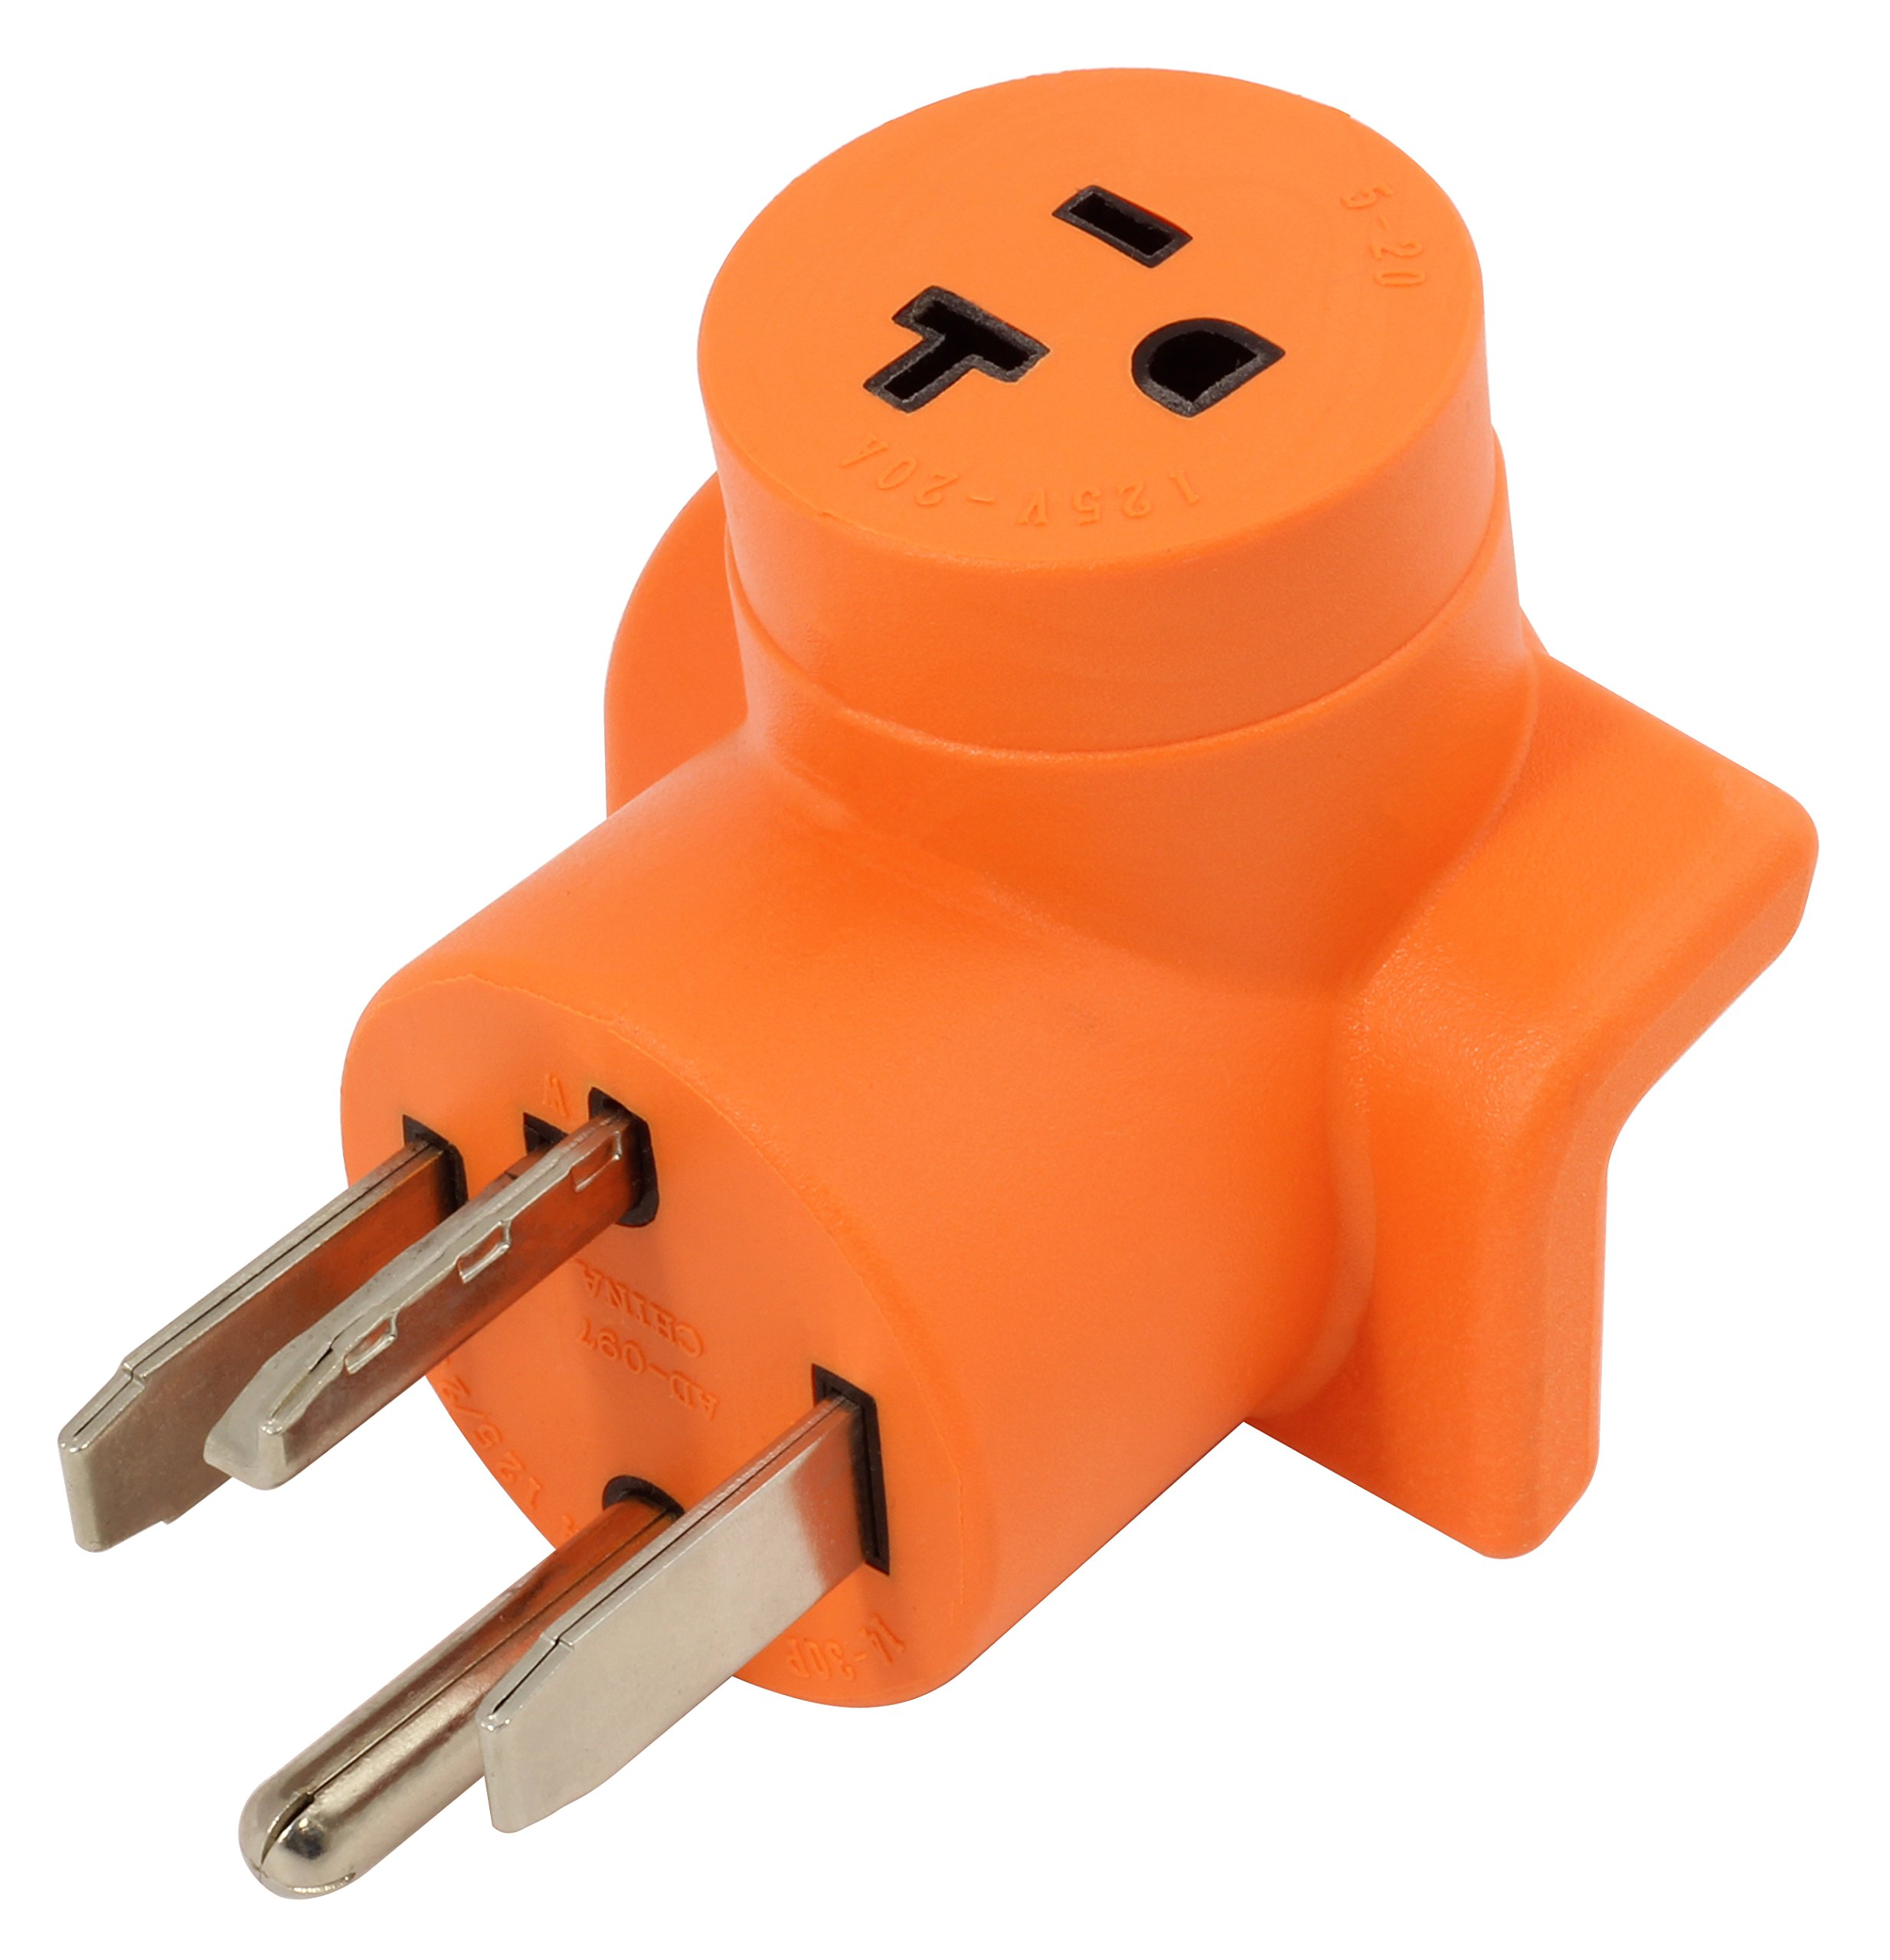 AC WORKS [AD1430520] Dryer Outlet Adapter NEMA 14-30P 30Amp Dryer Outlet to Household 15/20Amp 125Volt T Blade Female Connector by AC WORKS (Image #1)